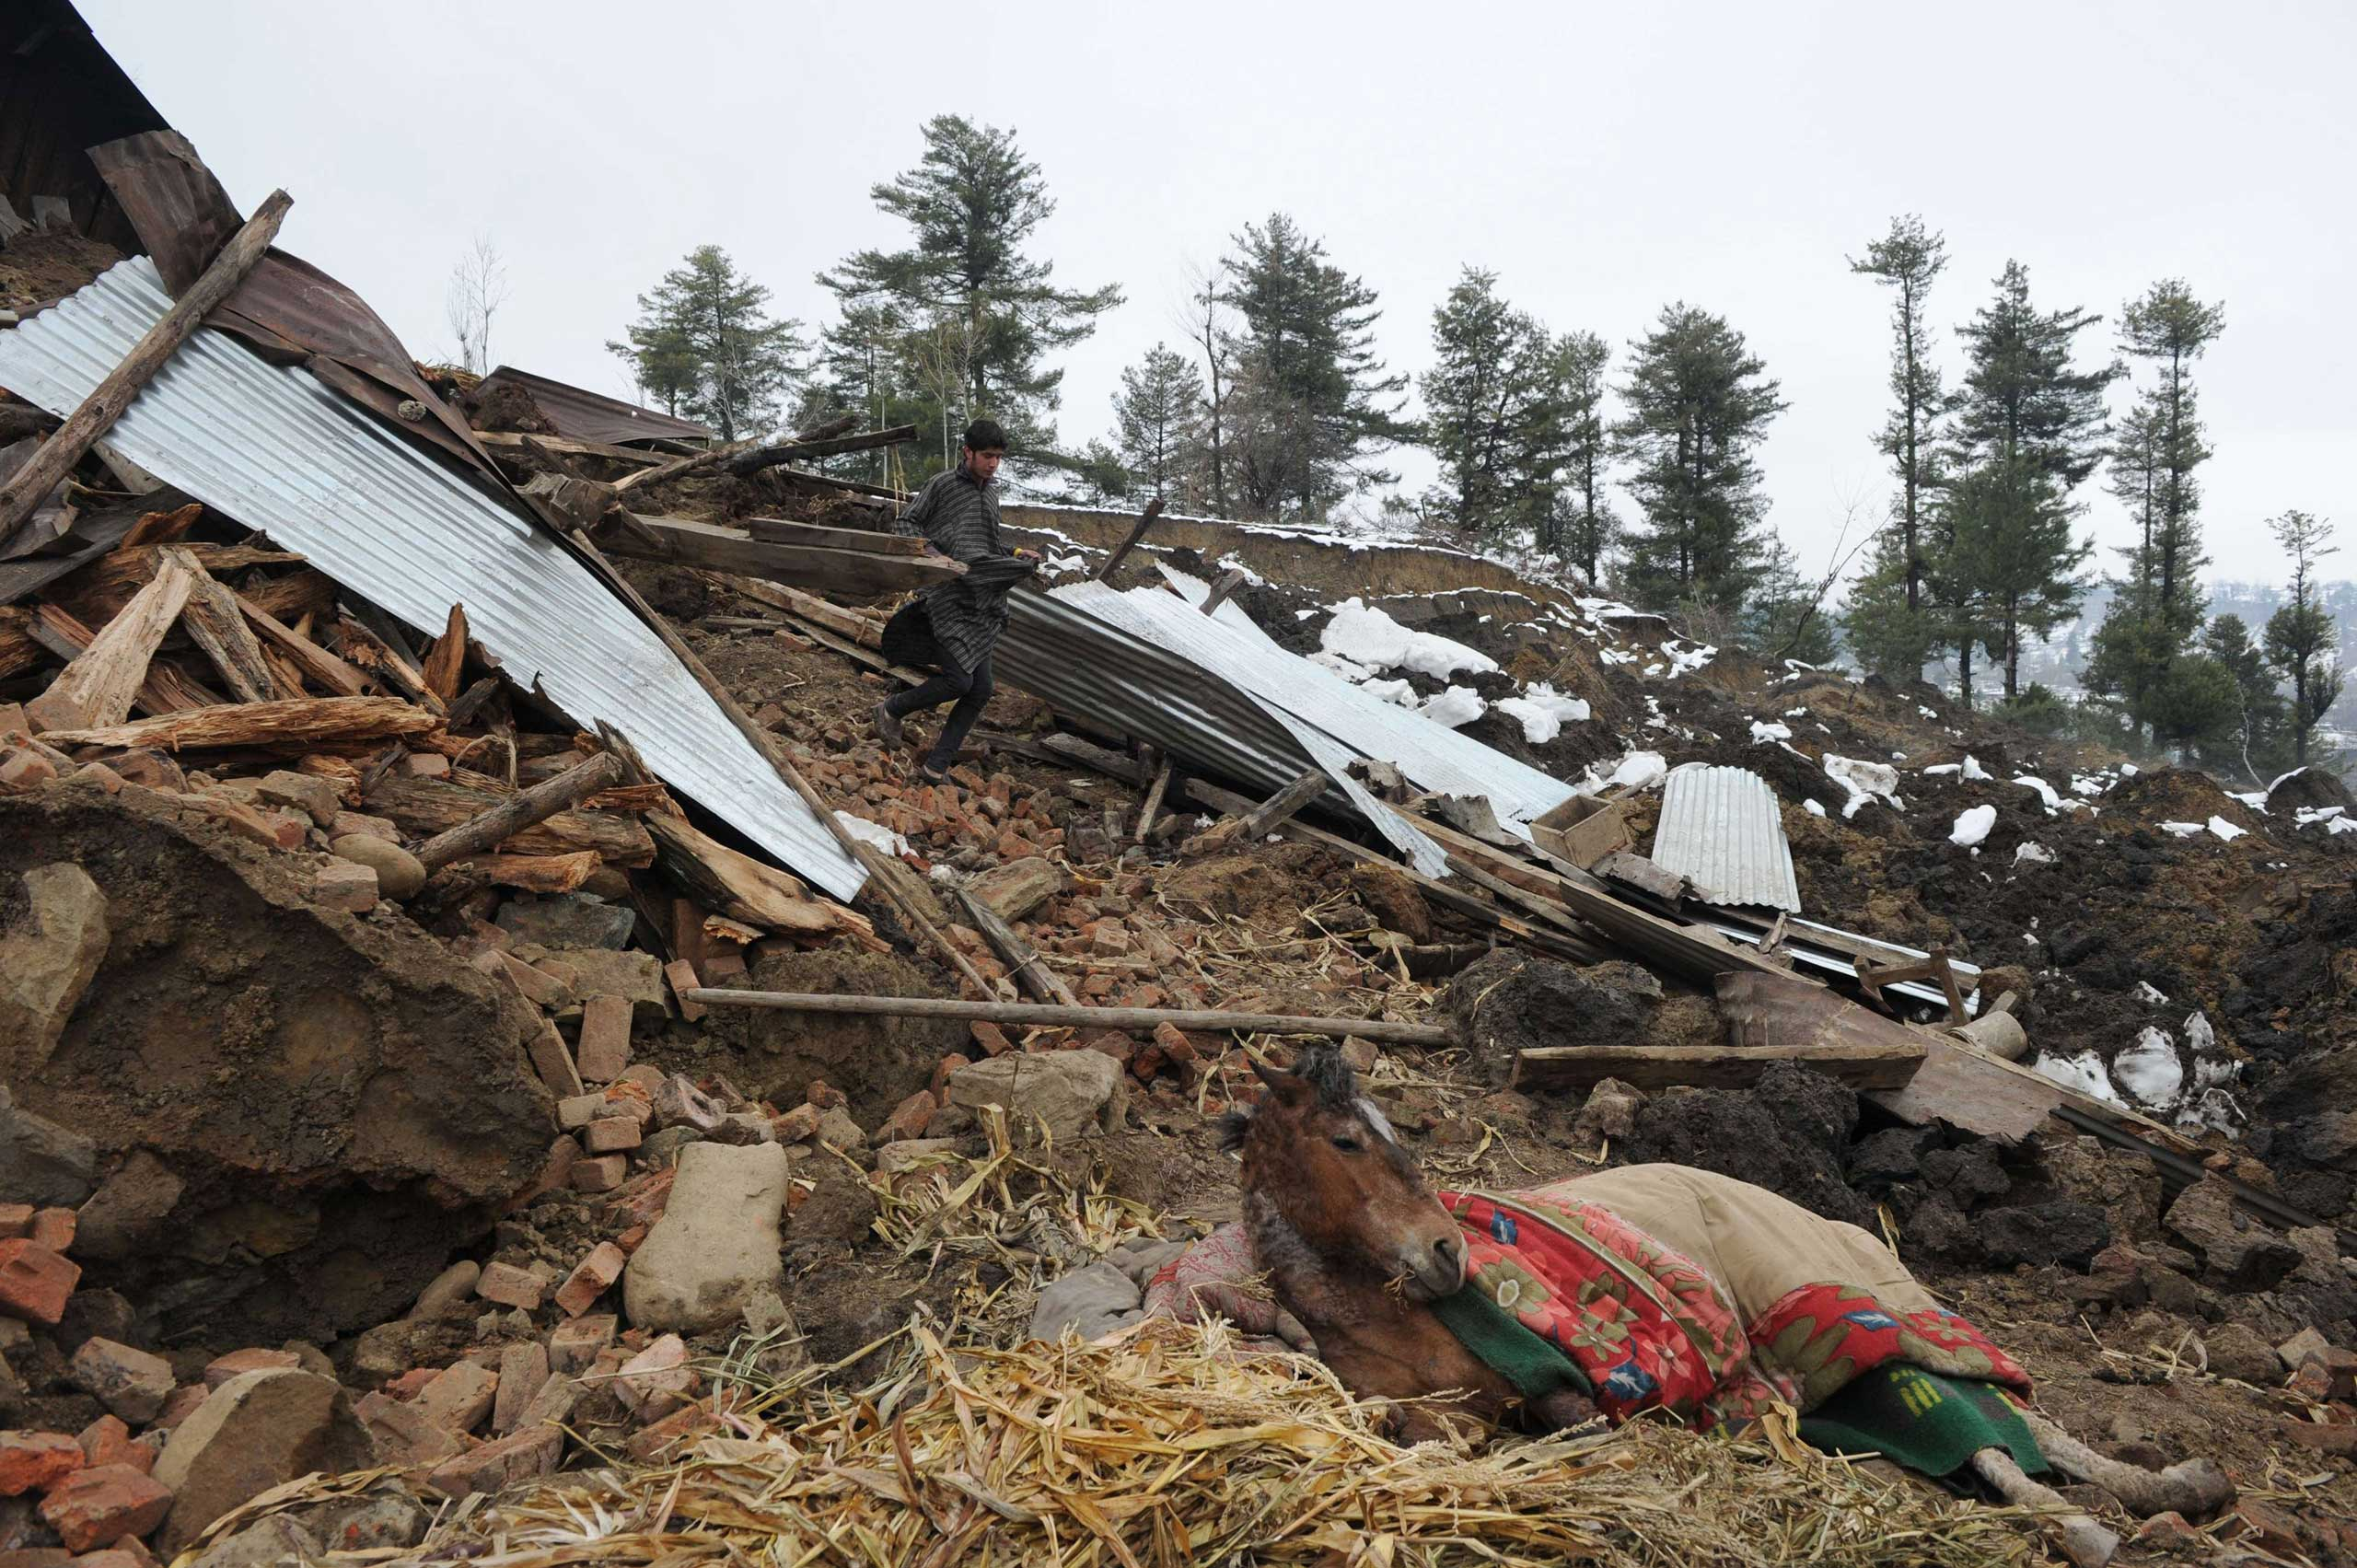 A Kashmiri villager walks near an injured horse close to a damaged house in the village of Laden following a landslide due to heavy rainfall on March 30, 2015.